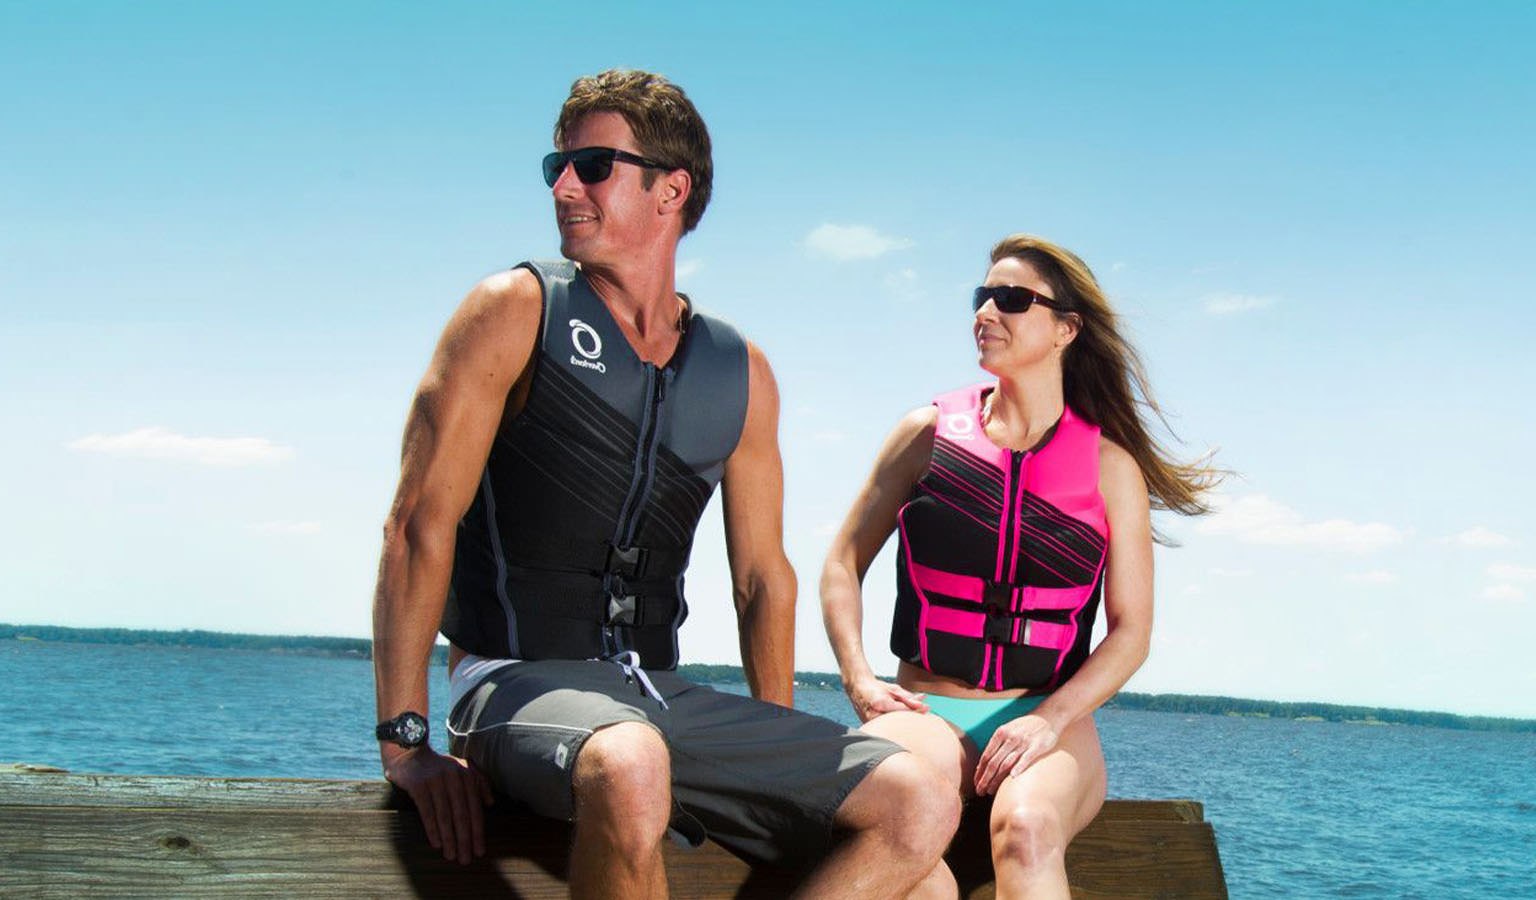 Up to 30% off Life Jackets